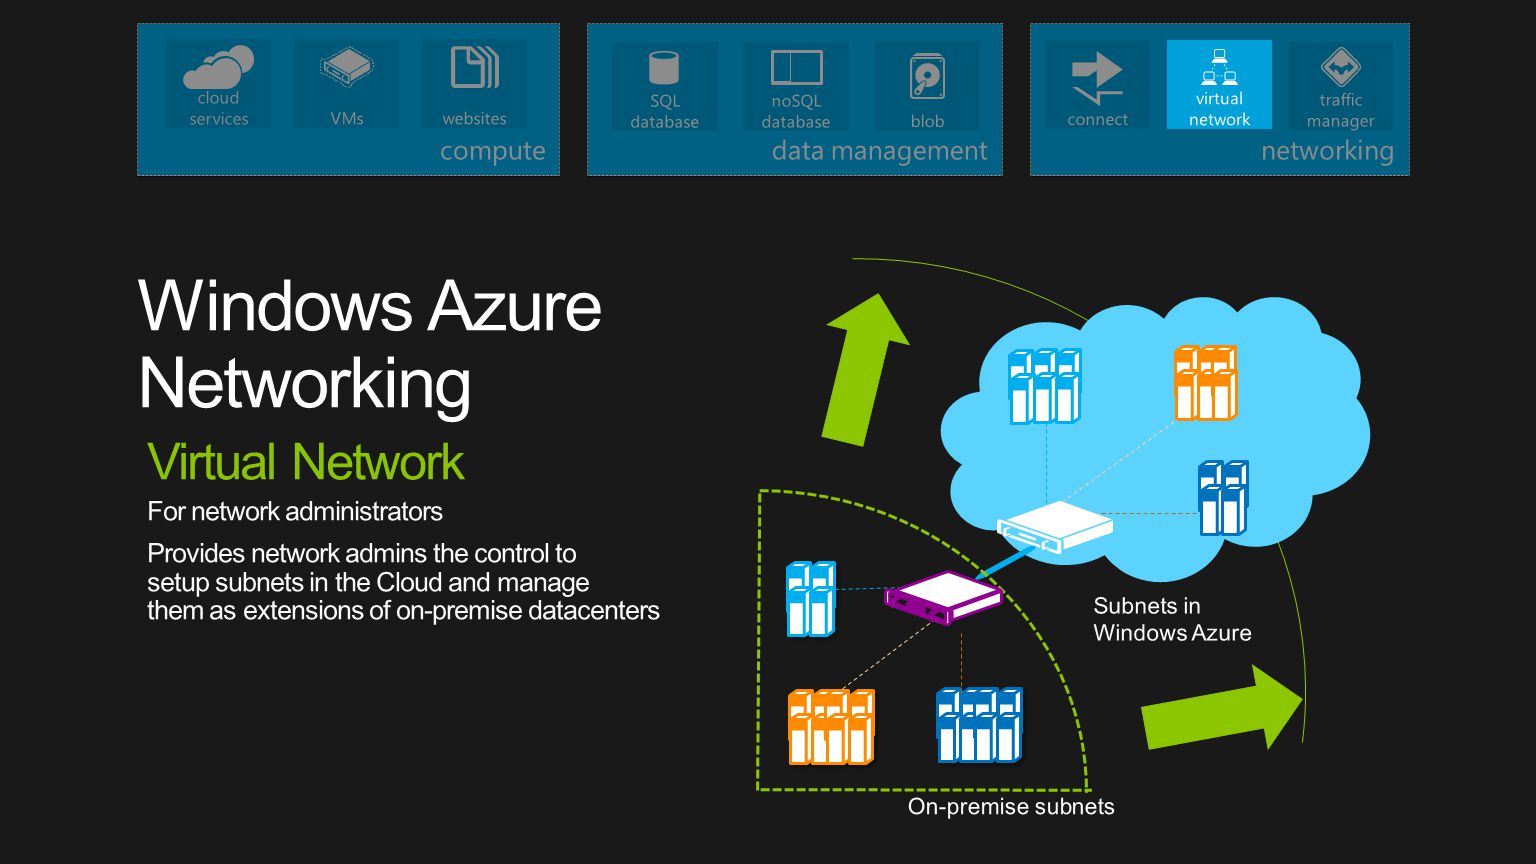 Subnets in Windows Azure Virtual Network For network administrators Provides network admins the control to setup subnets in the Cloud and manage them